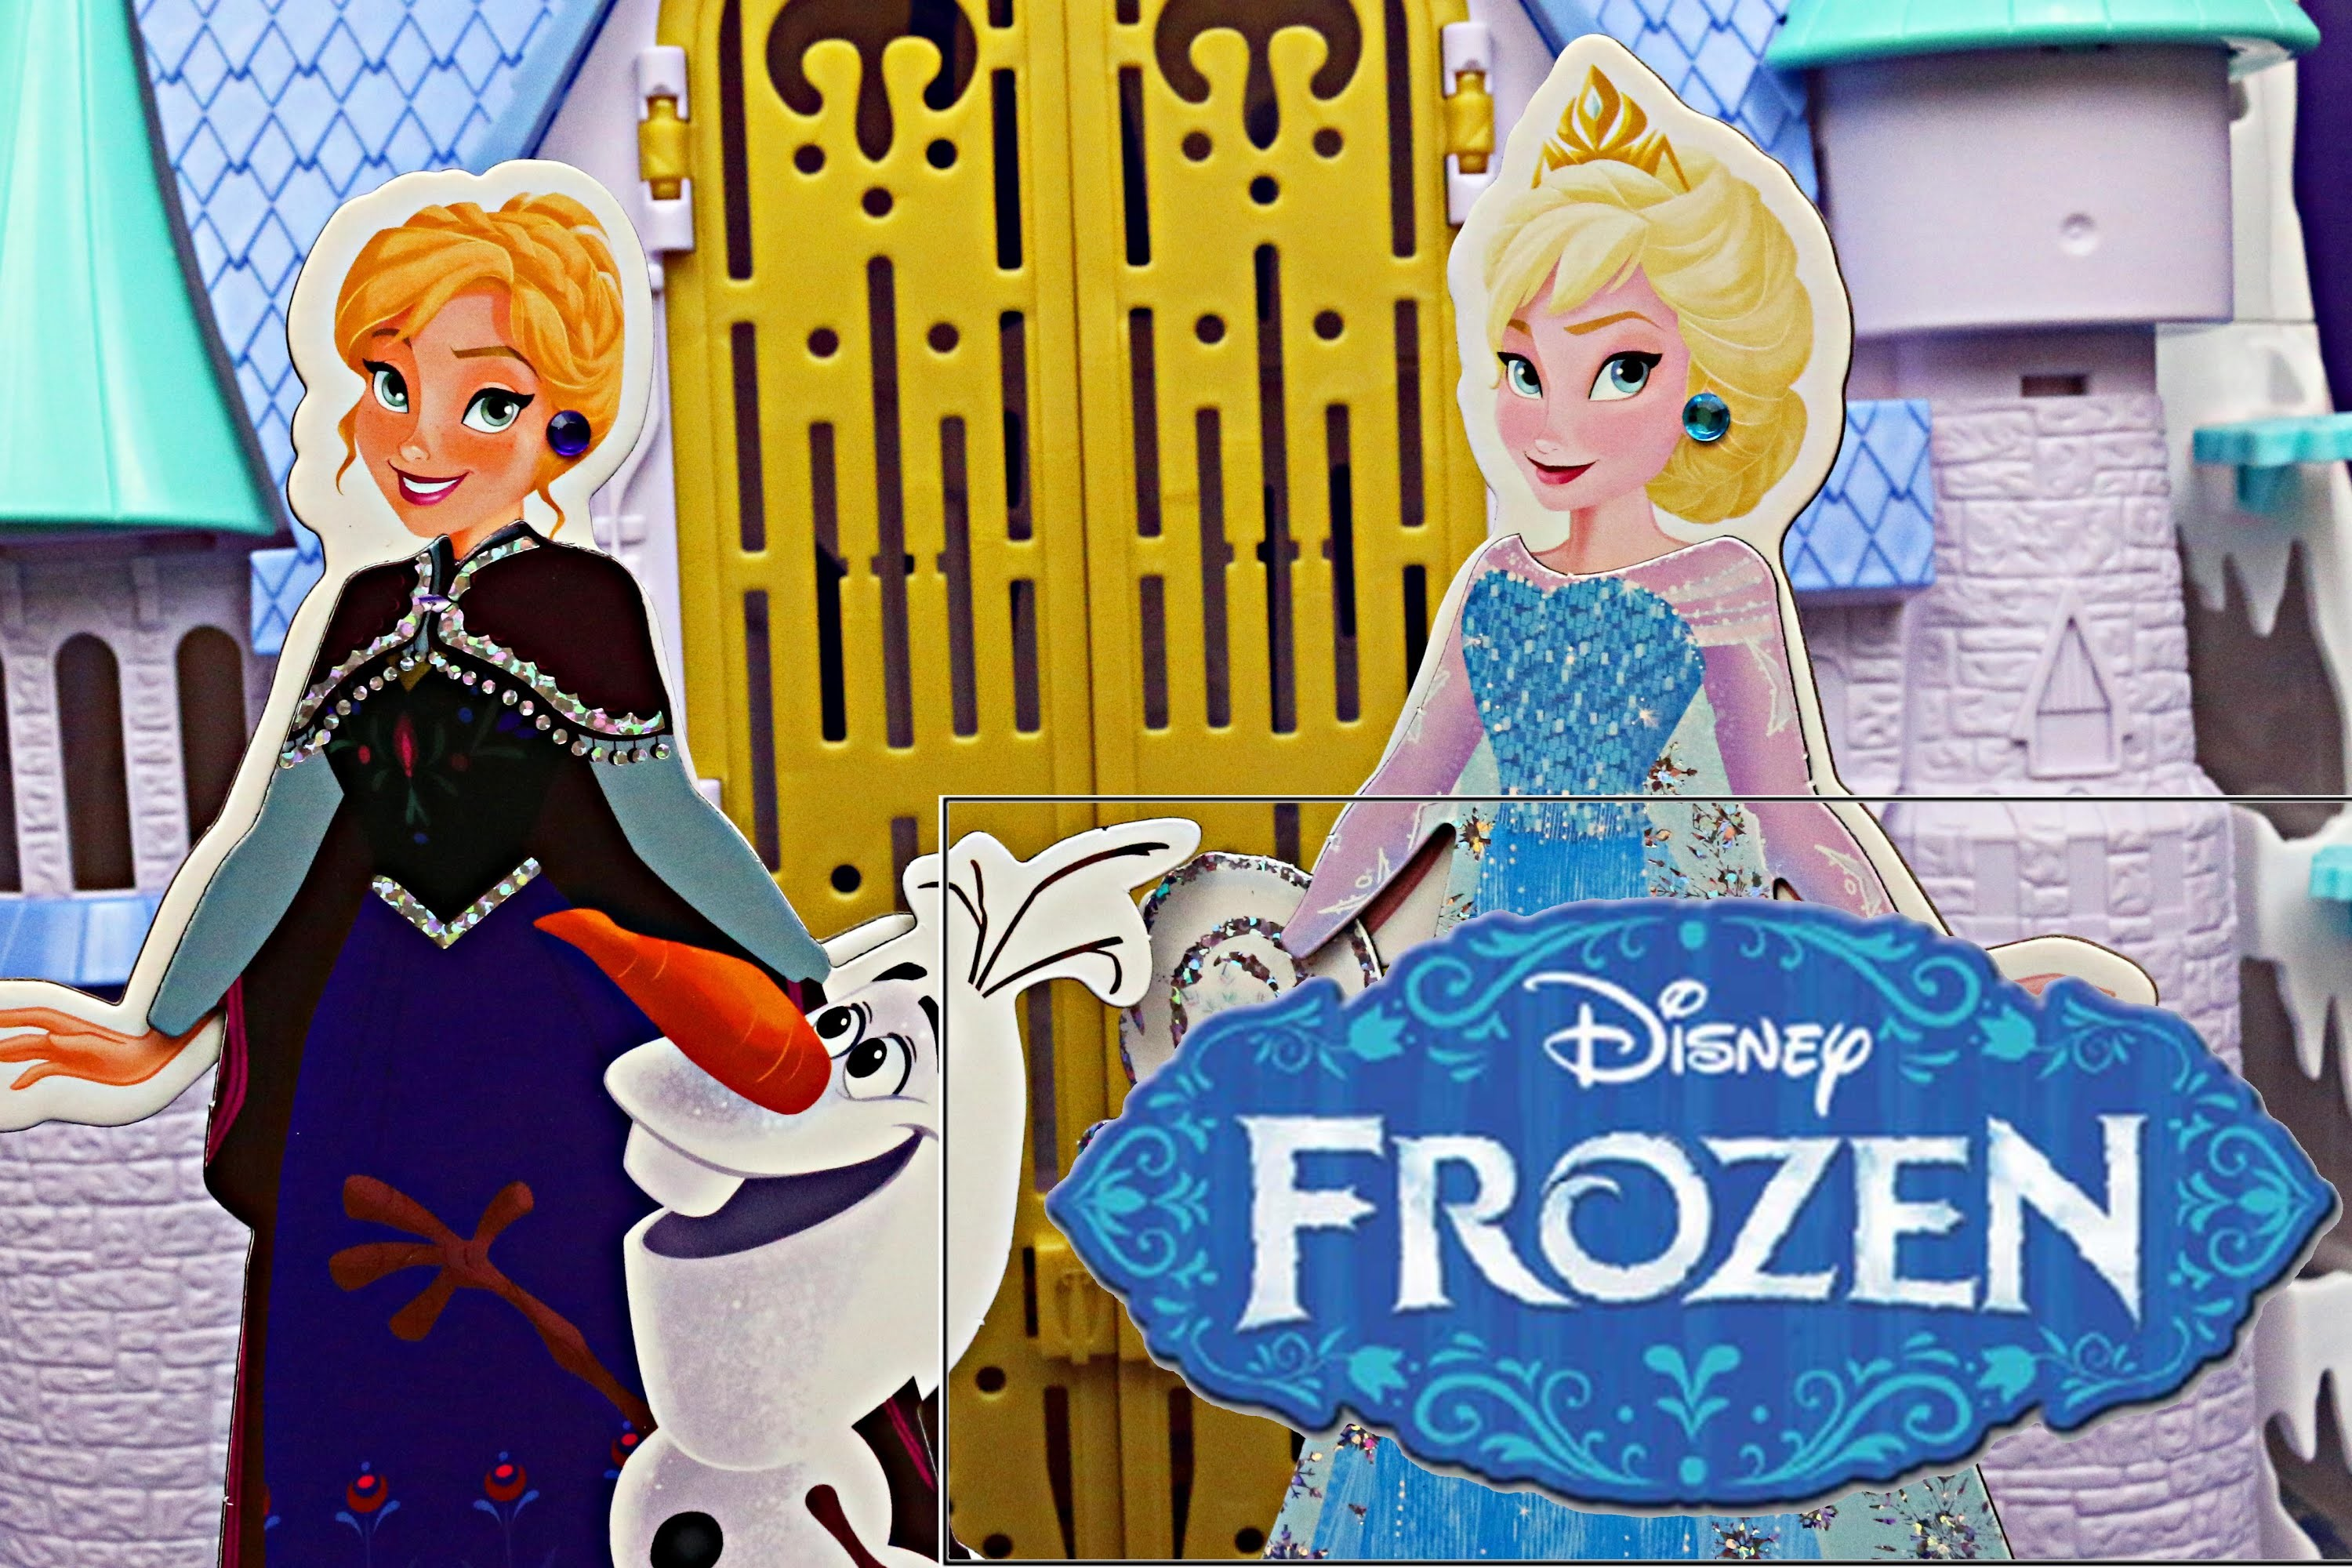 Frozen Elsa and Disney Frozen Anna Magnet Paper Dolls and Snowman Olaf Toy Review